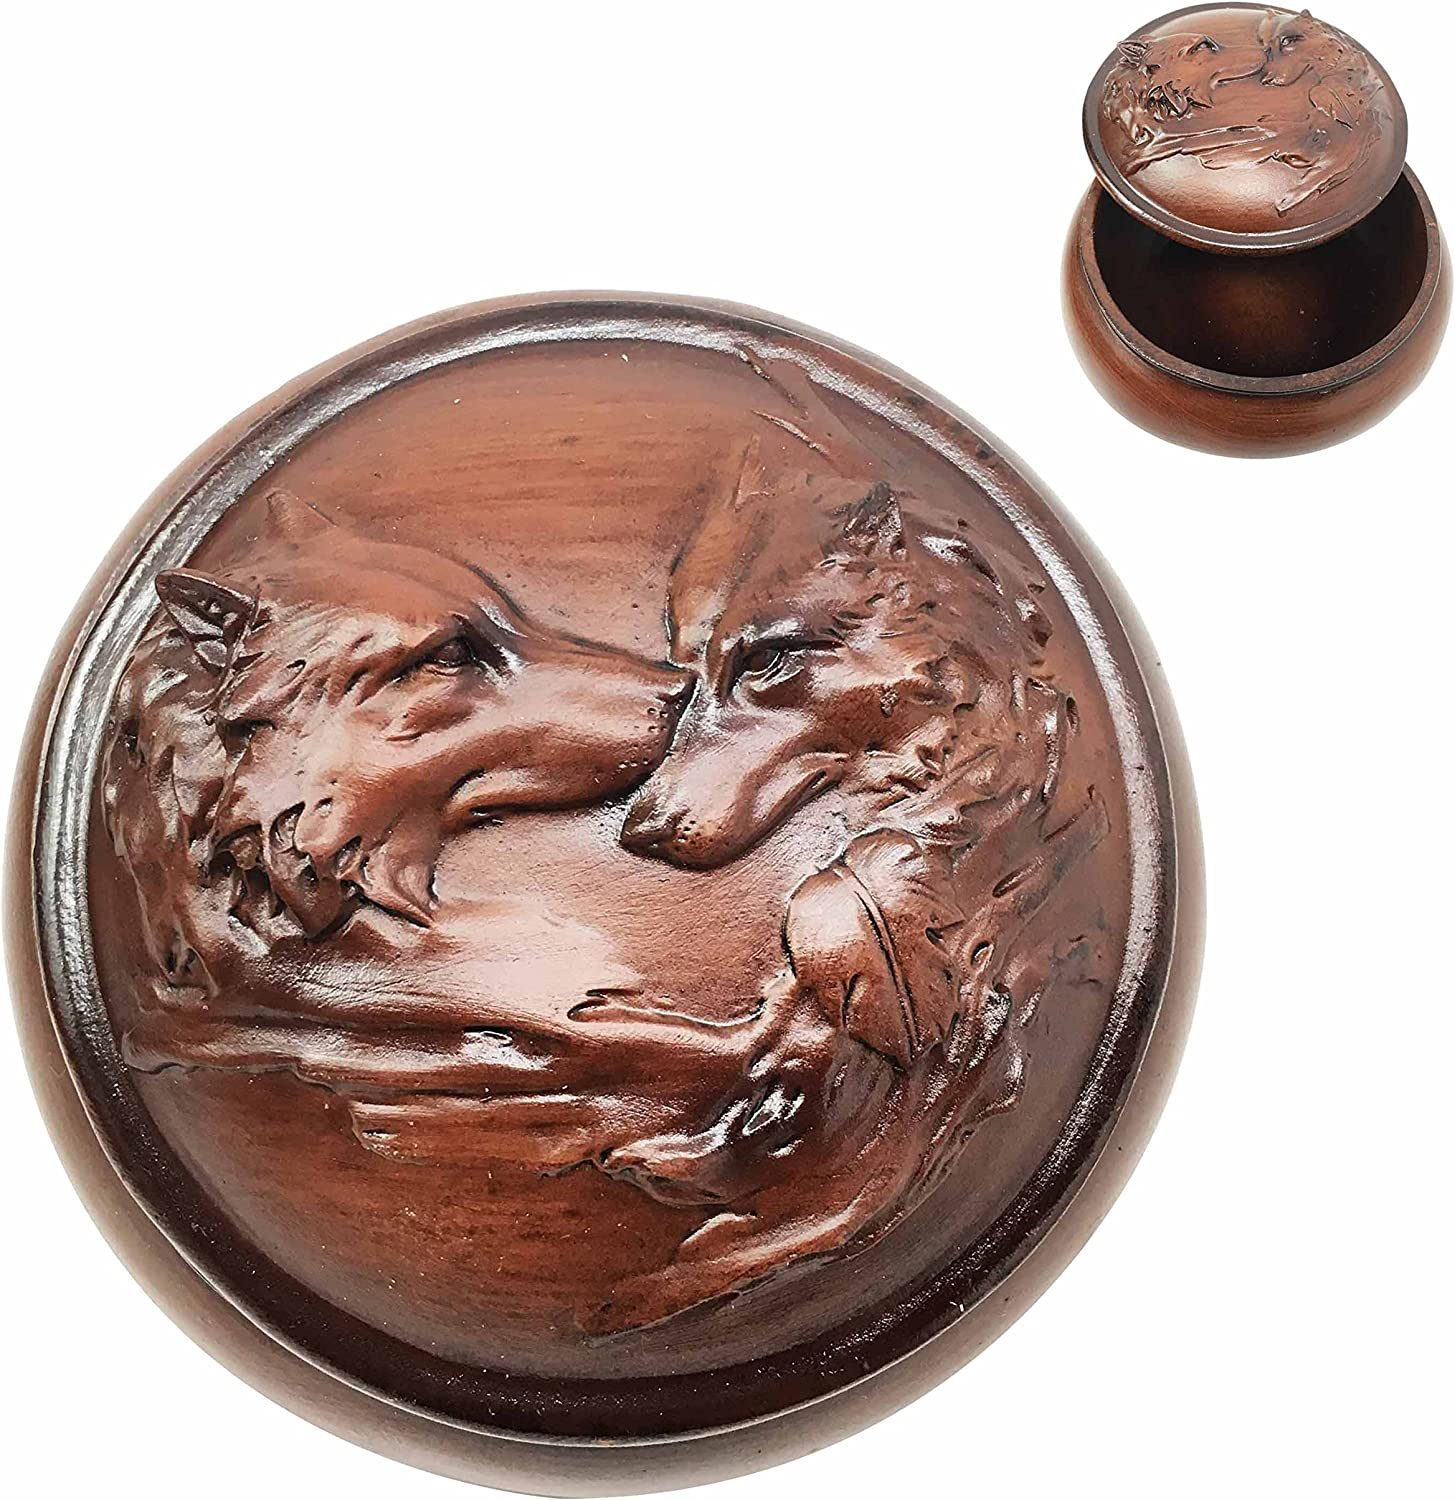 Ebros Gift Faux Wood Resin Moon Light Lovers Wolf Couple Rounded Jewelry Decorative Box Figurine As Decor of Timberwolves Wolves In Cries Of The Night Animal Totem Spirit Sculpture Accessory Storage